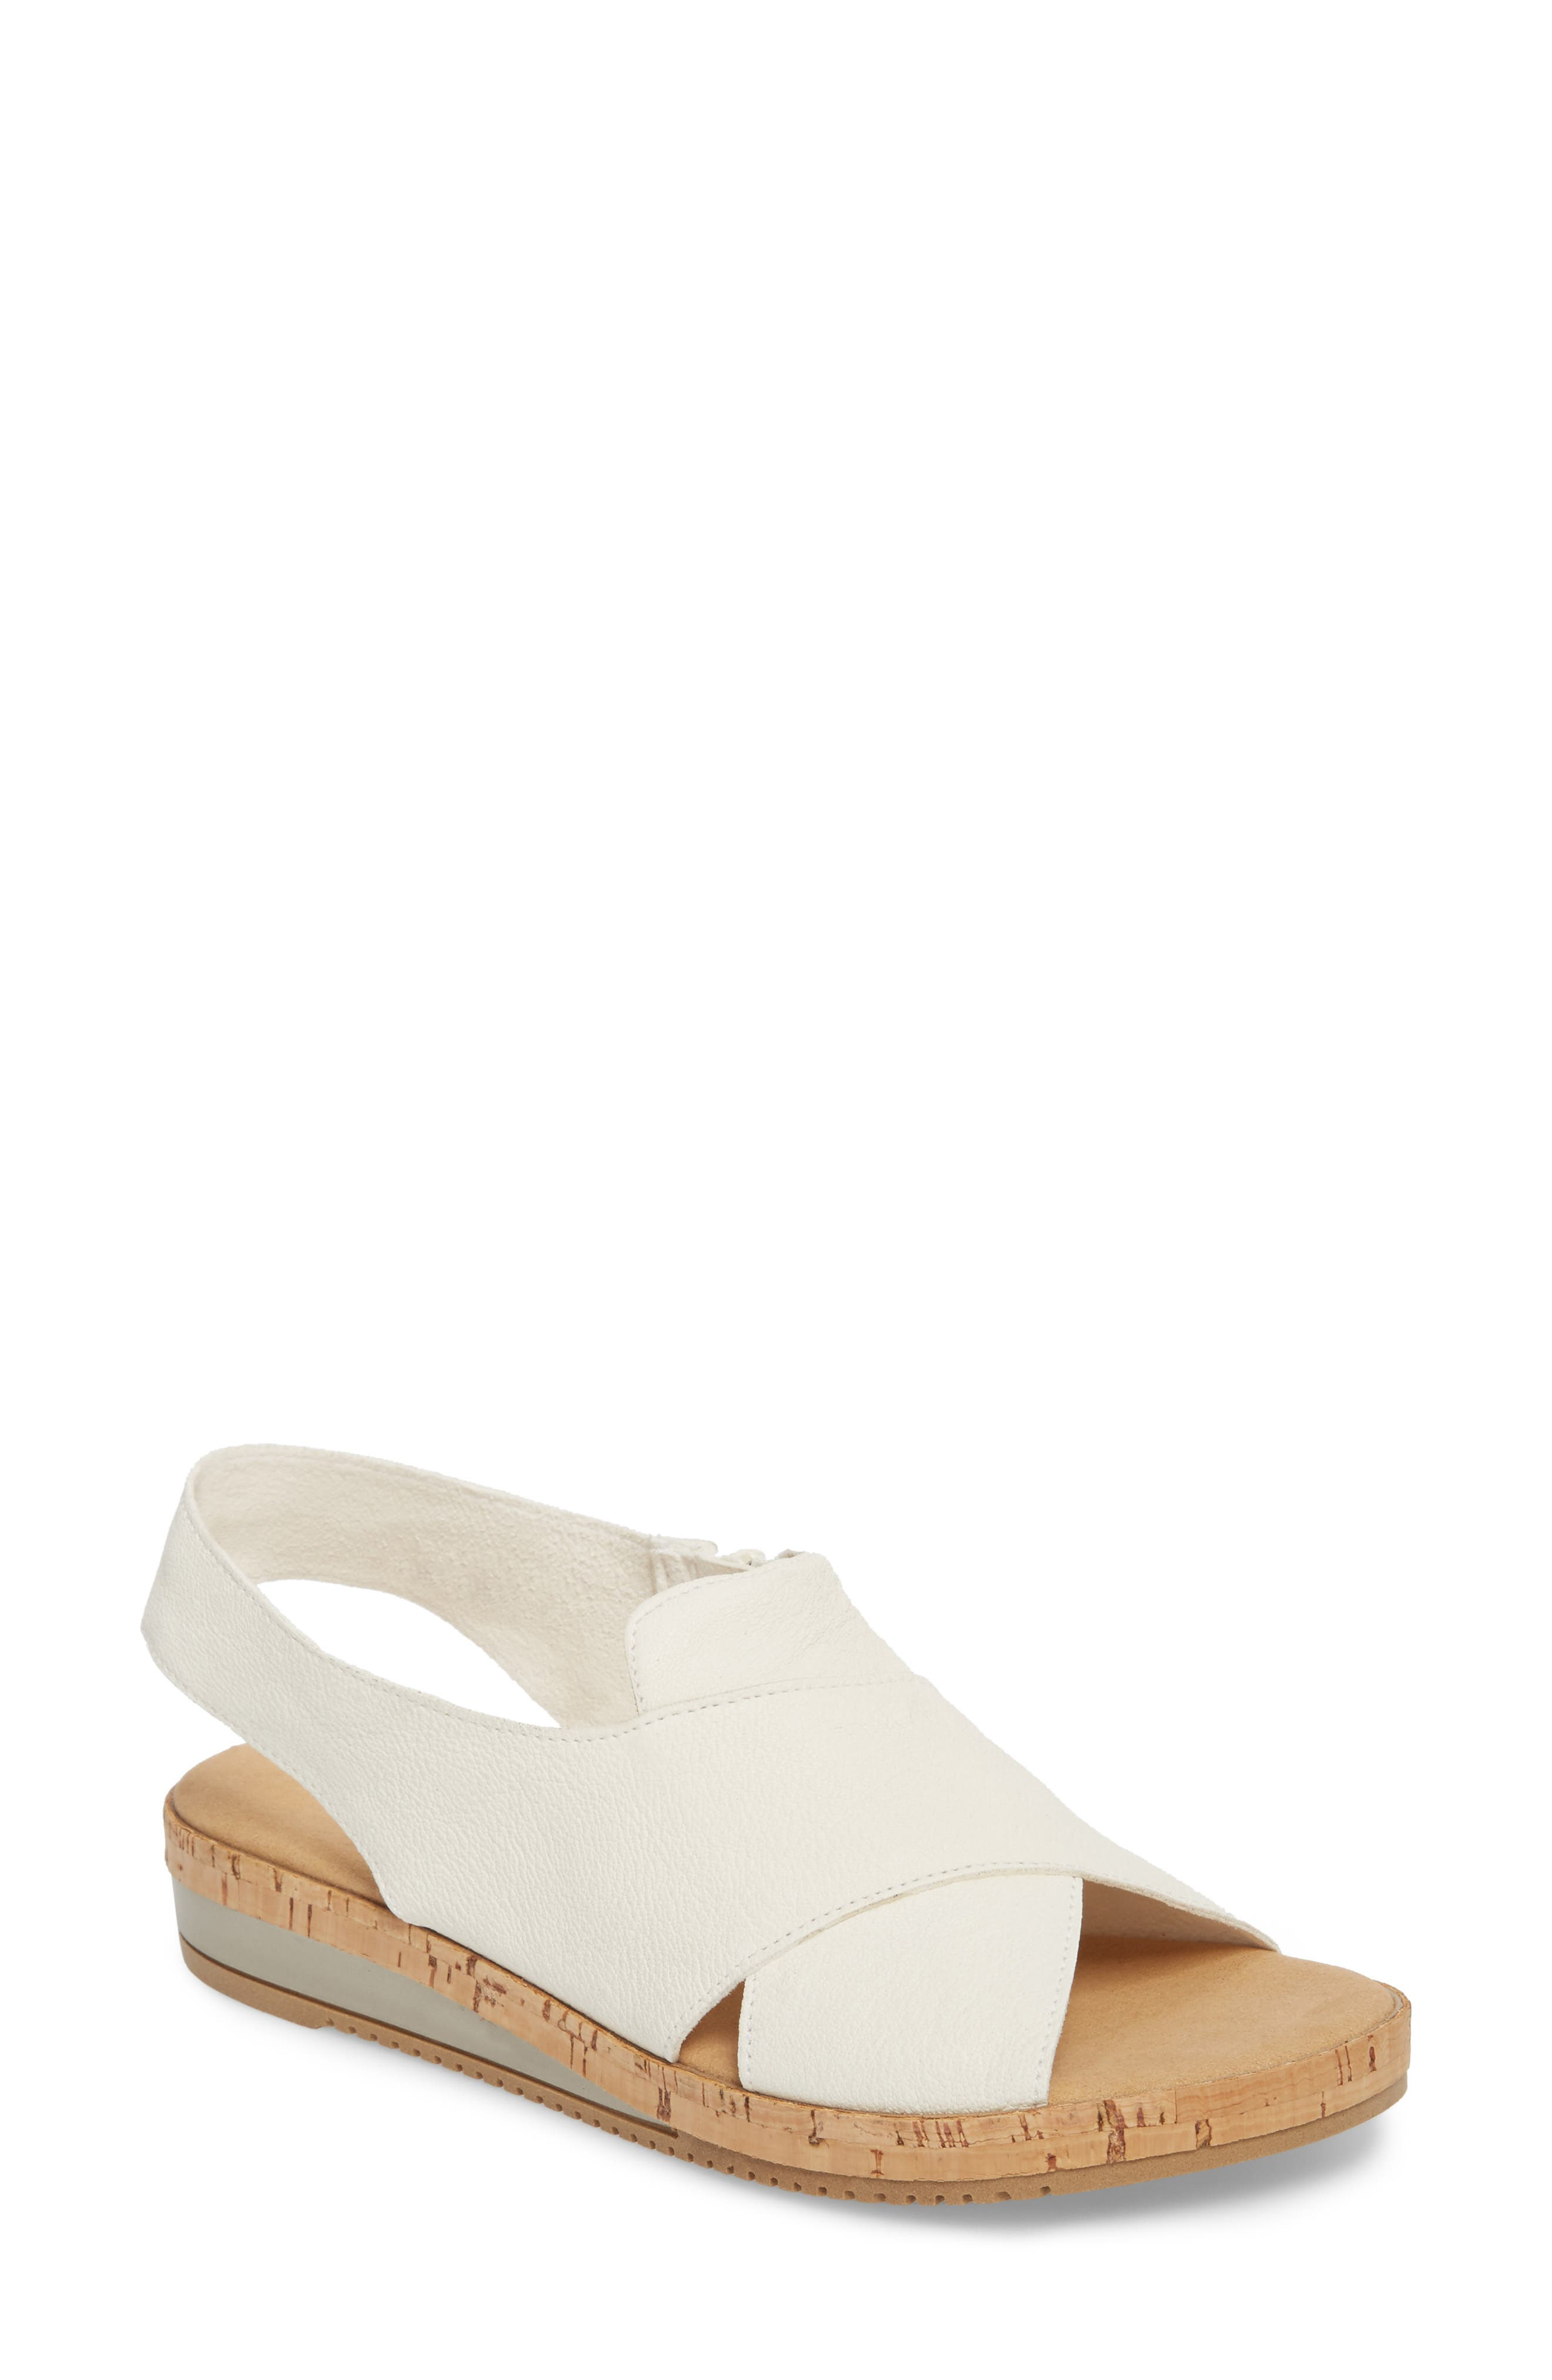 Sylke Sandal,                         Main,                         color, WHITE LEATHER